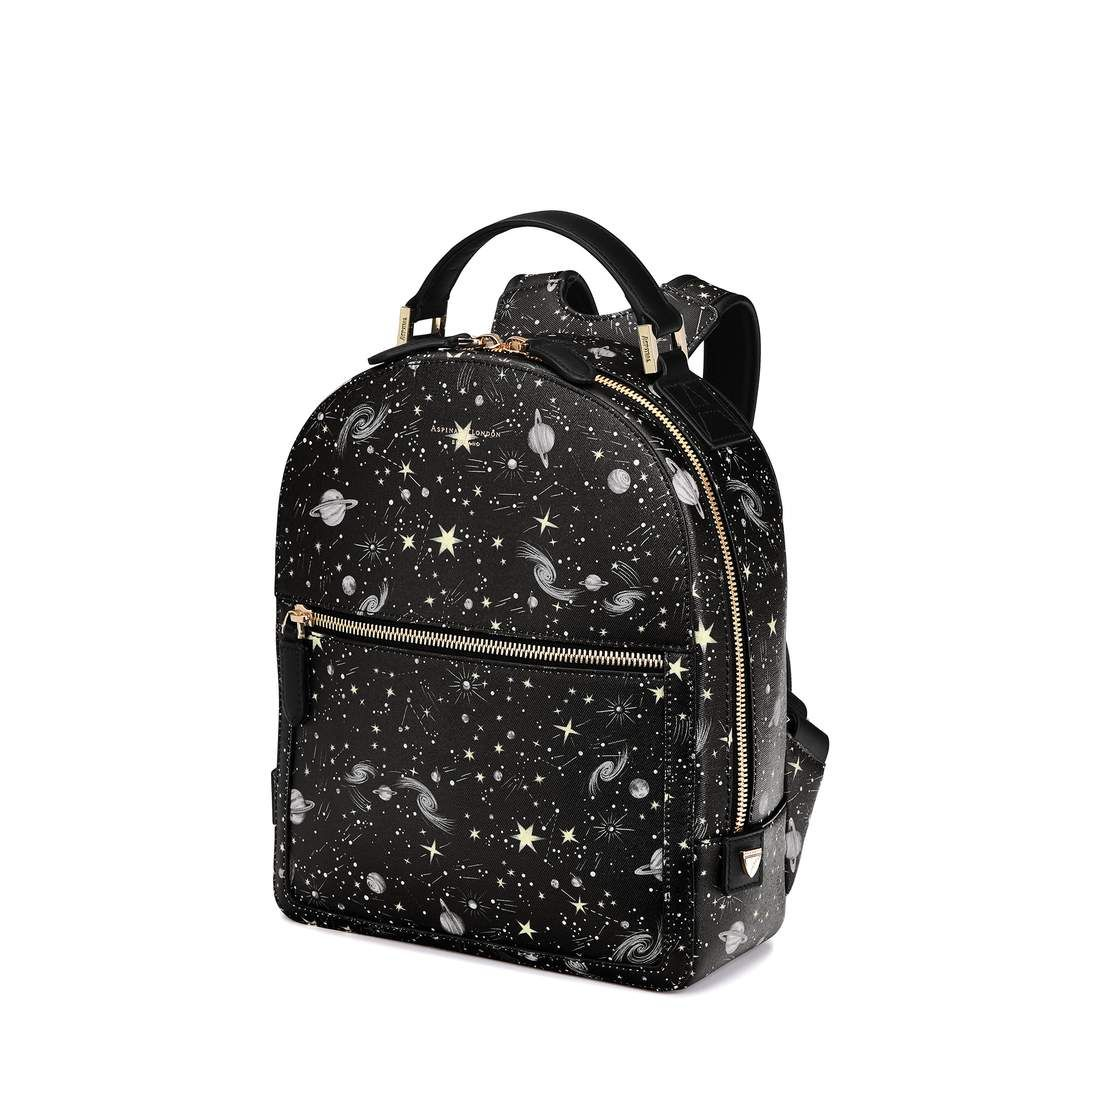 99161e70375 Constellation Backpack in Black Constellation Print from Aspinal of London